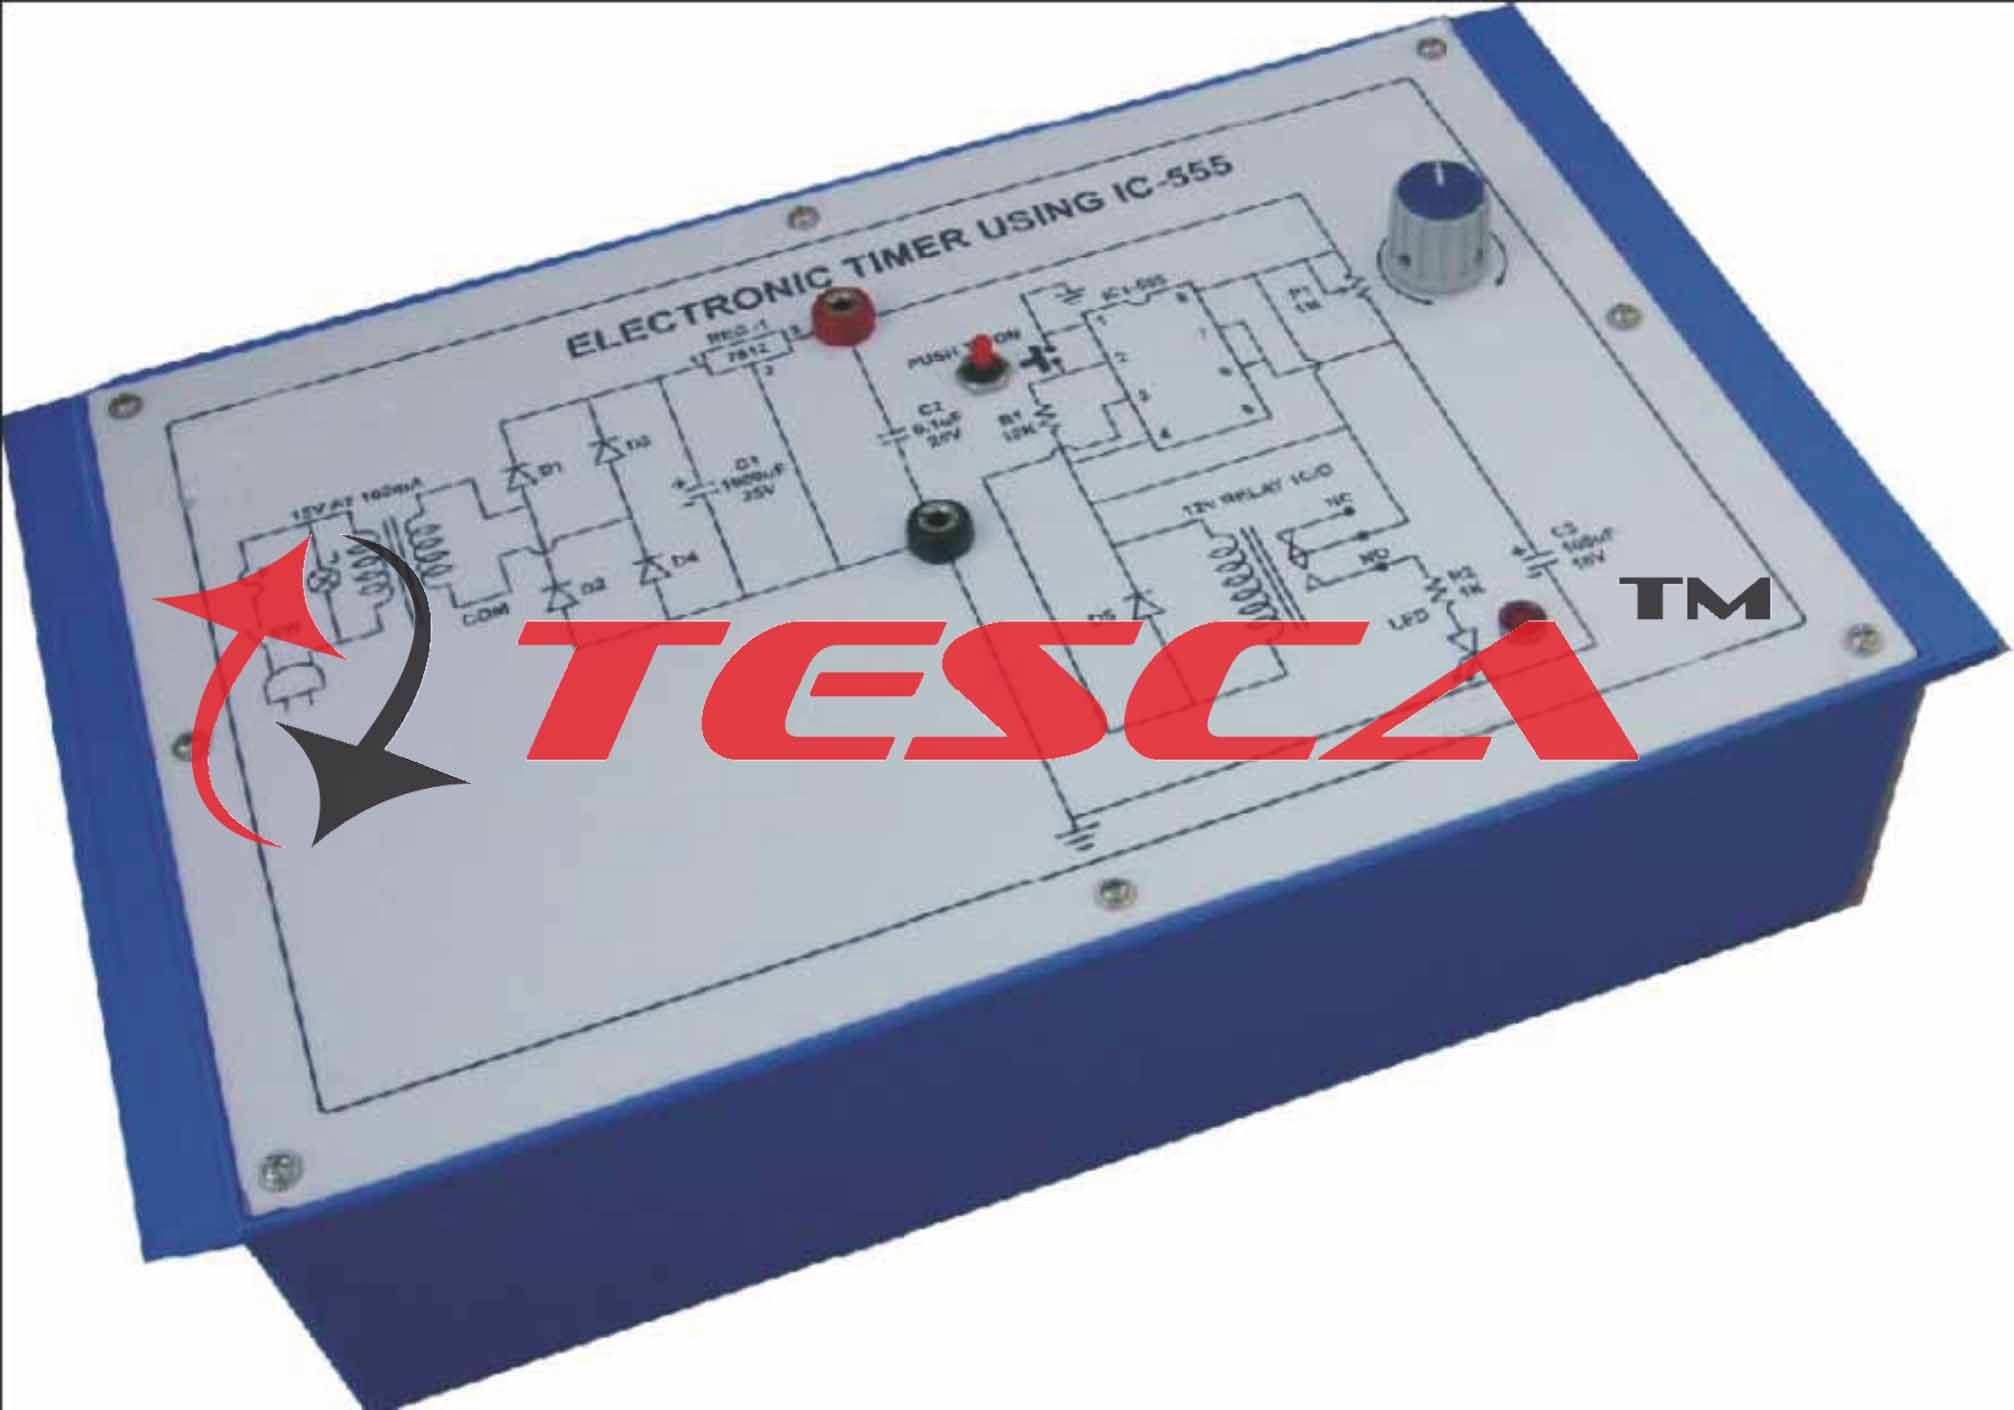 Electronic Timer Using Ic 555 With Power Supply Diagram